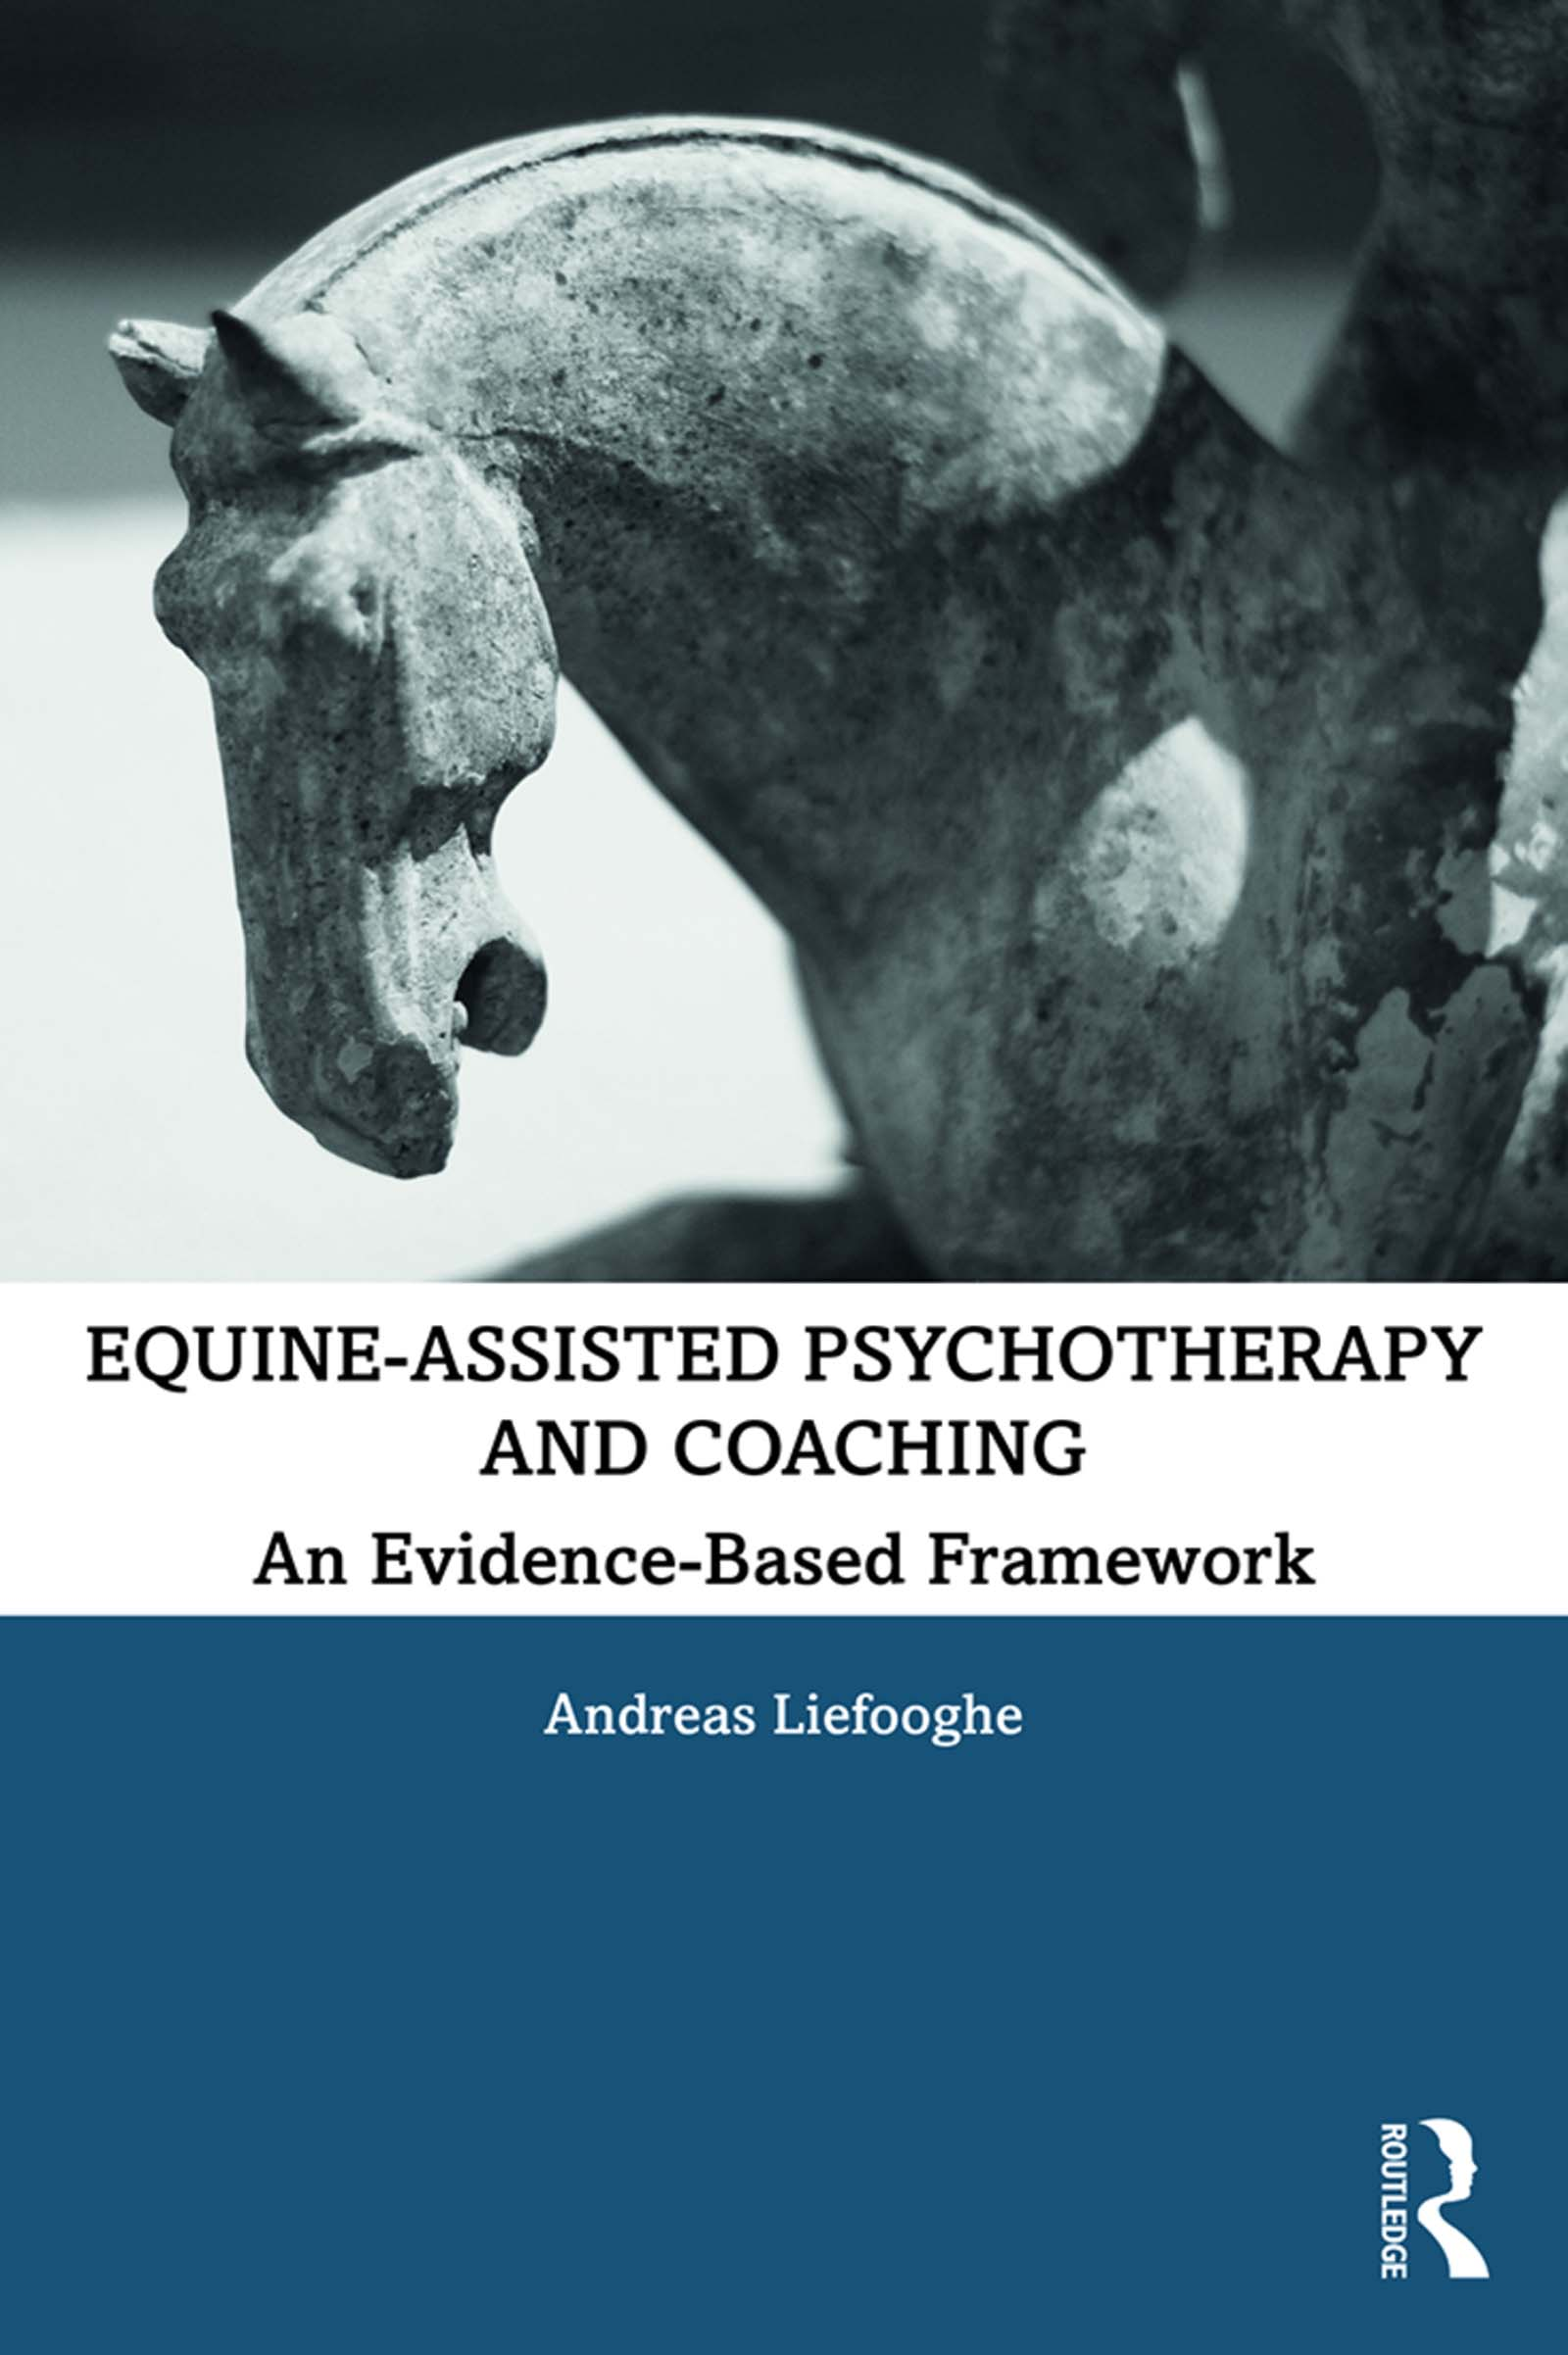 Equine-Assisted Psychotherapy and Coaching: An Evidence-Based Framework book cover